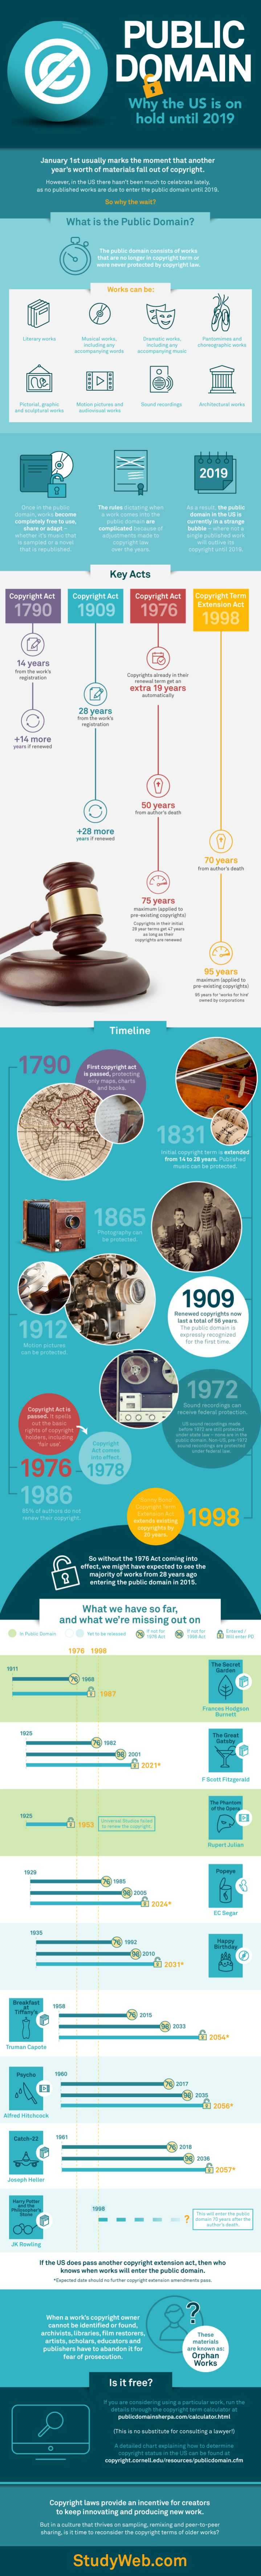 All you wanted to know about public domain - infographic